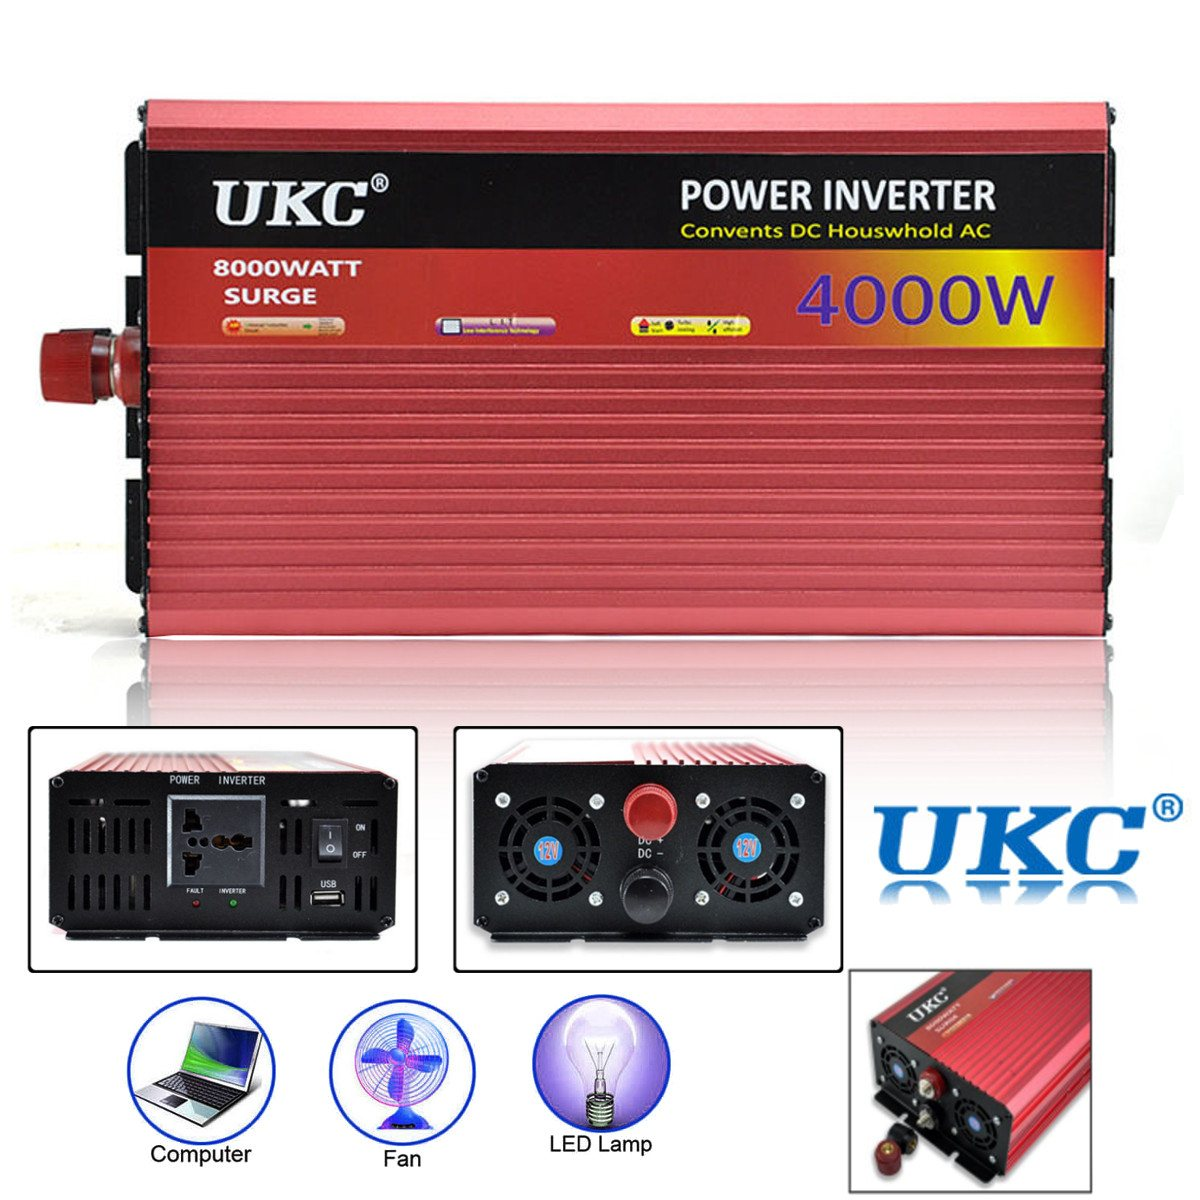 Power Inverter 12V 220V 4000W 8000W Peak- Modified Sine Wave Power Inverter DC12V to AC220V Voltage Transformer Converter USB converter dc12v to ac220v inverter modified sine wave peak power 2000w sia1000w home solar power car inverter